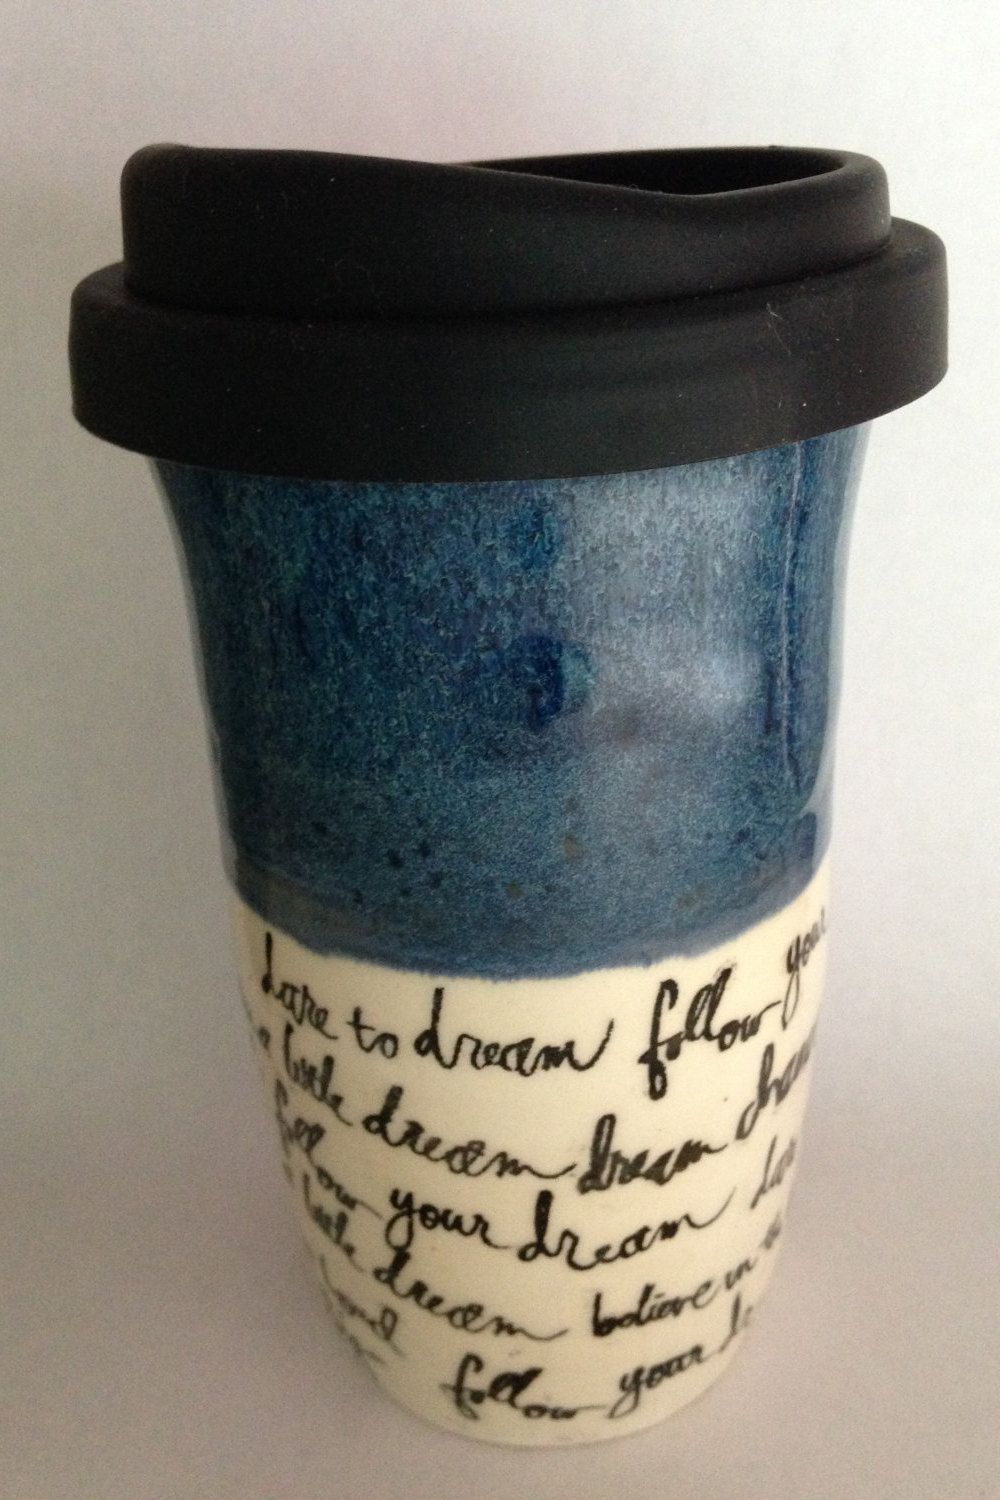 Travel Mug, Ceramic Travel Mug, Coffee Travel Mug, Coffee Mug, Mug, Handmade by RuthiesPottery by RuthiesPottery on Etsy